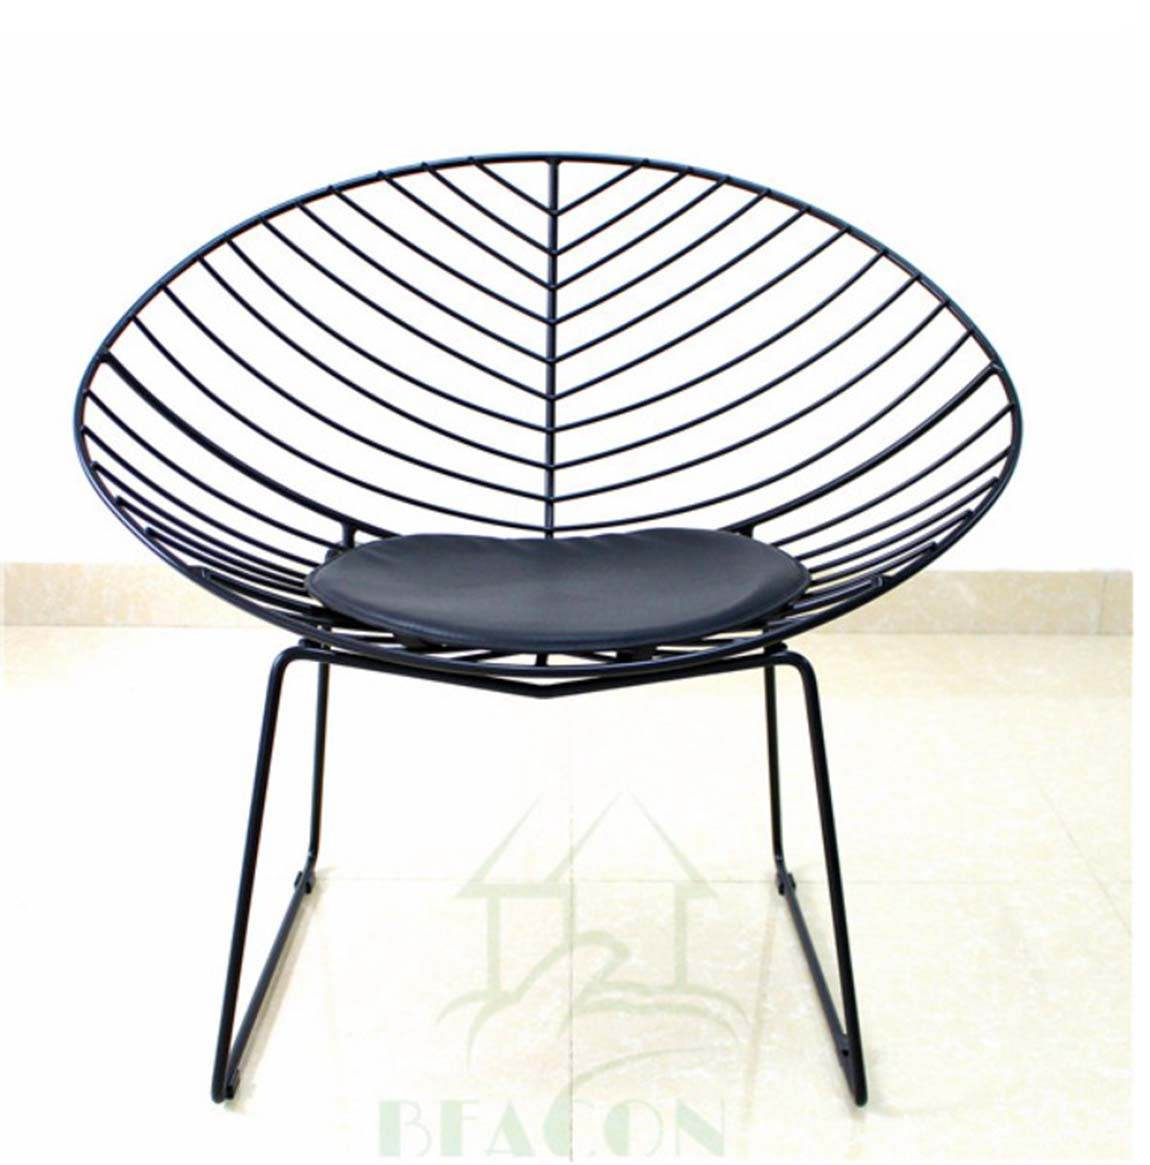 ghe-sat-nghe-thuat-wire-chair-2